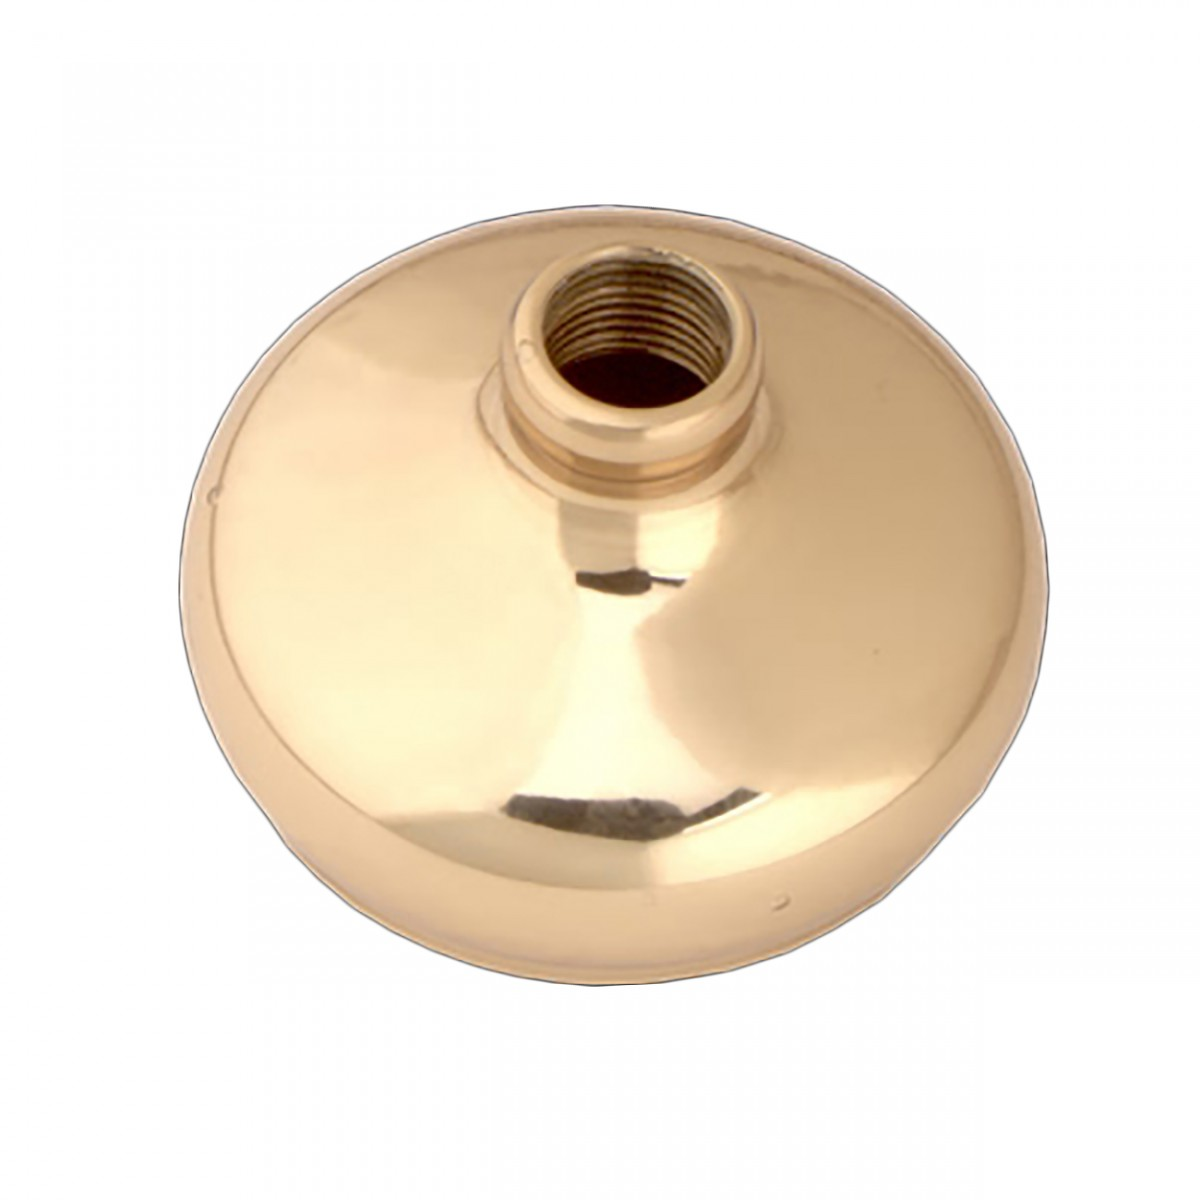 Bell For Widespread Tub Shower Faucet Replacement Brass